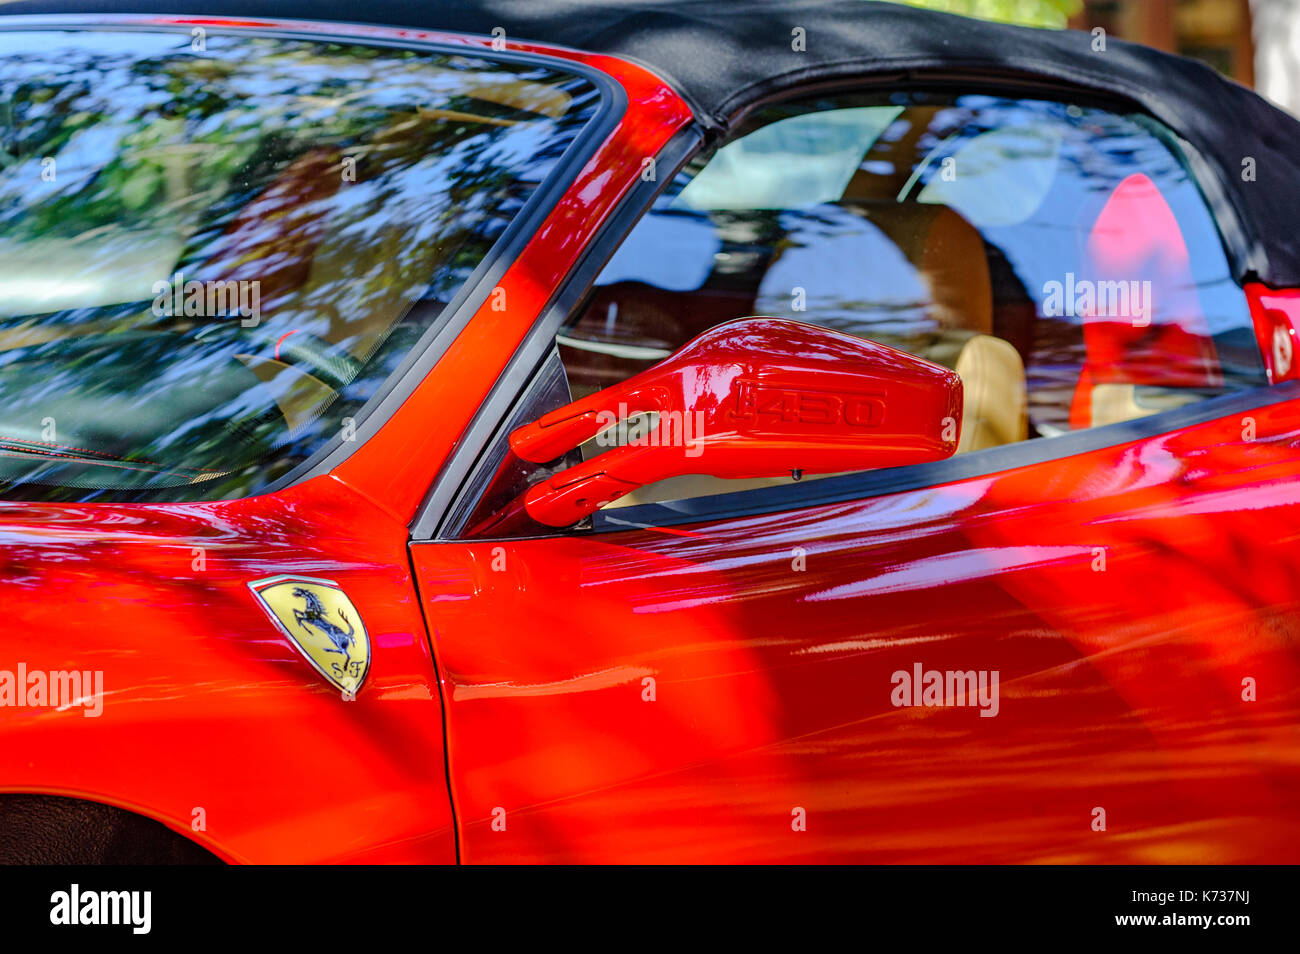 Red Ferrari F430 Spider sports car parked on the street in Hyde Park, Tampa, Florida, United States. The Ferrari is considered a super car. - Stock Image